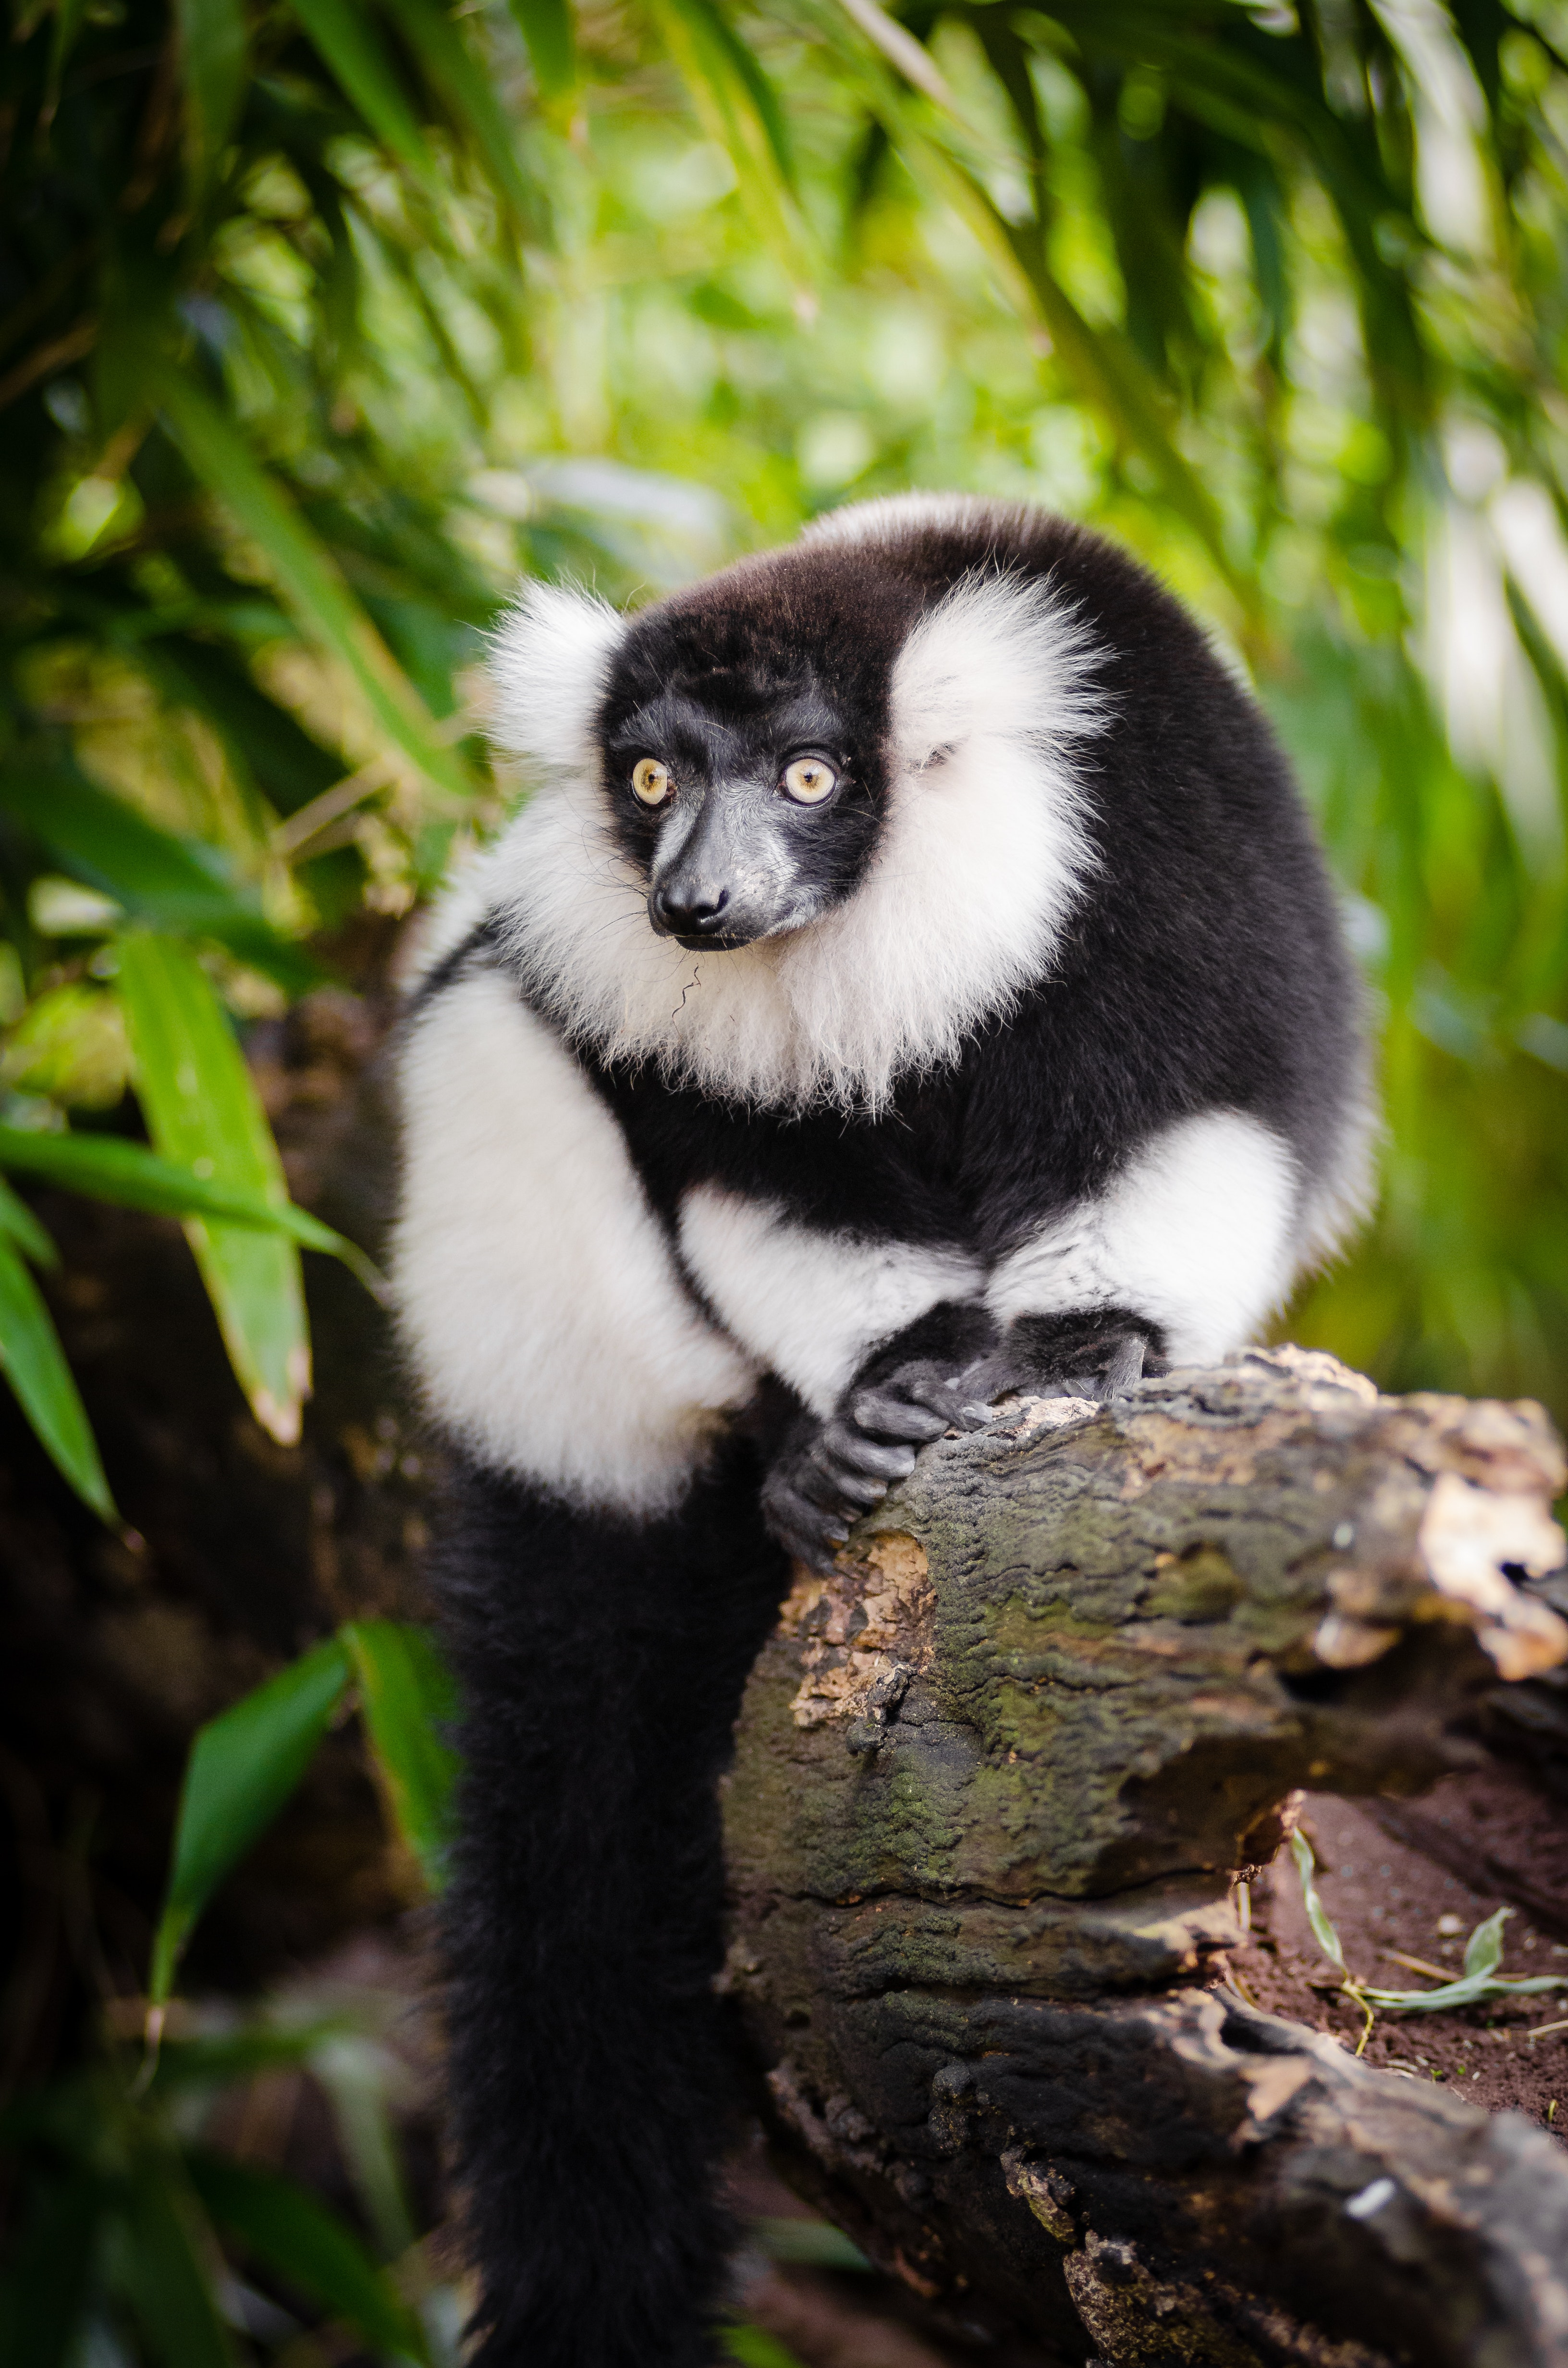 White and Black Long Coated Animal, Primate, Wood, Wildlife, Wilderness, HQ Photo